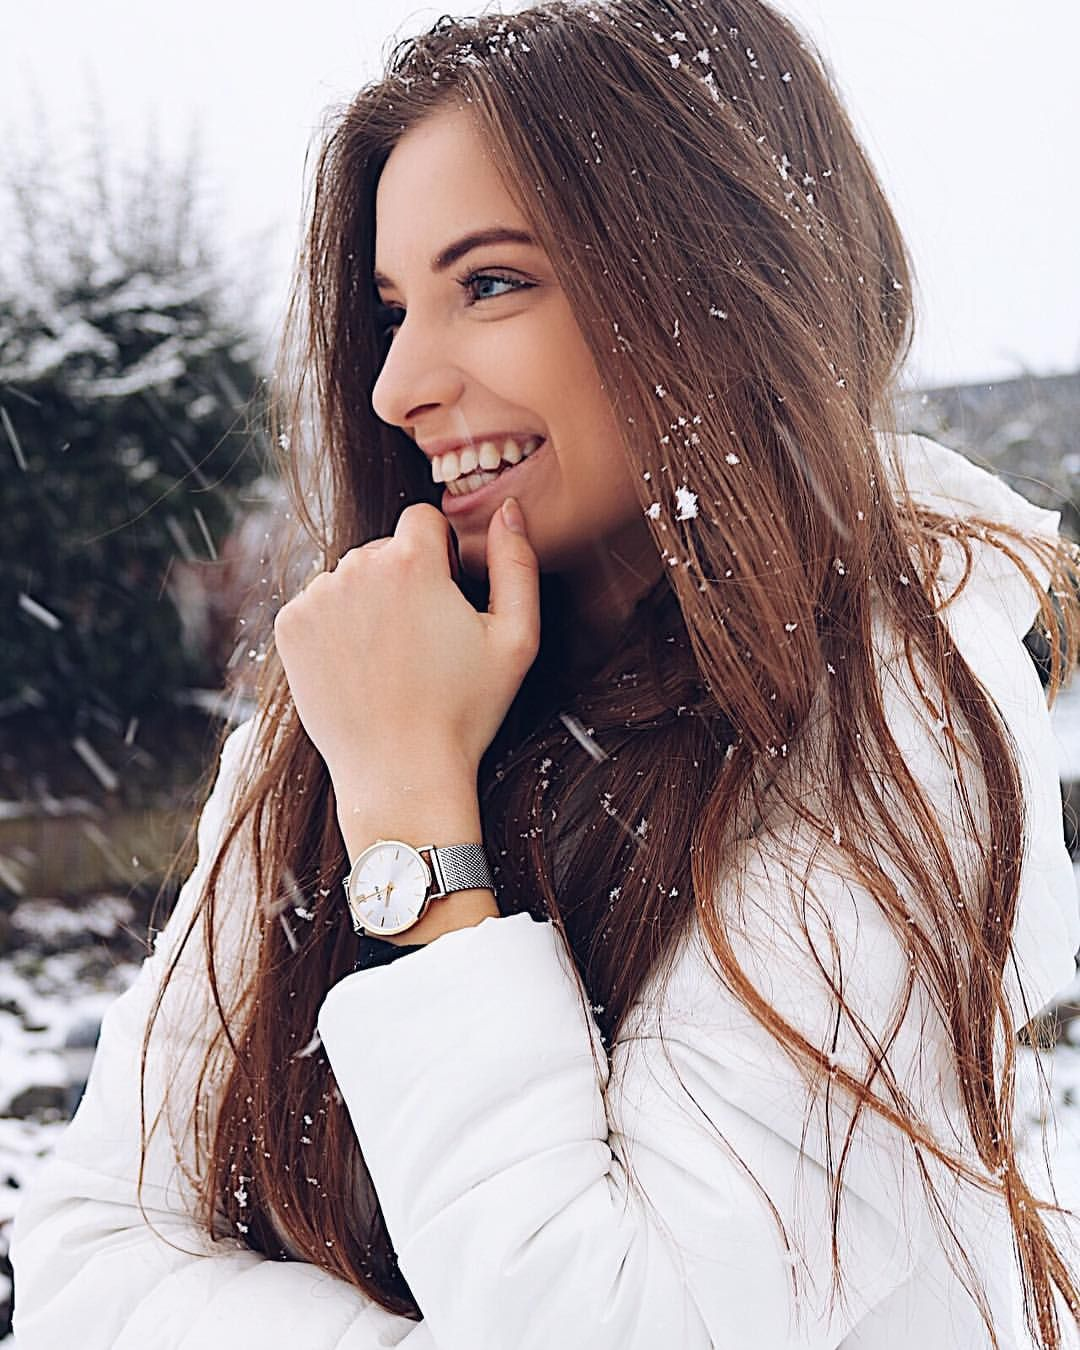 Wearing a watch in winter